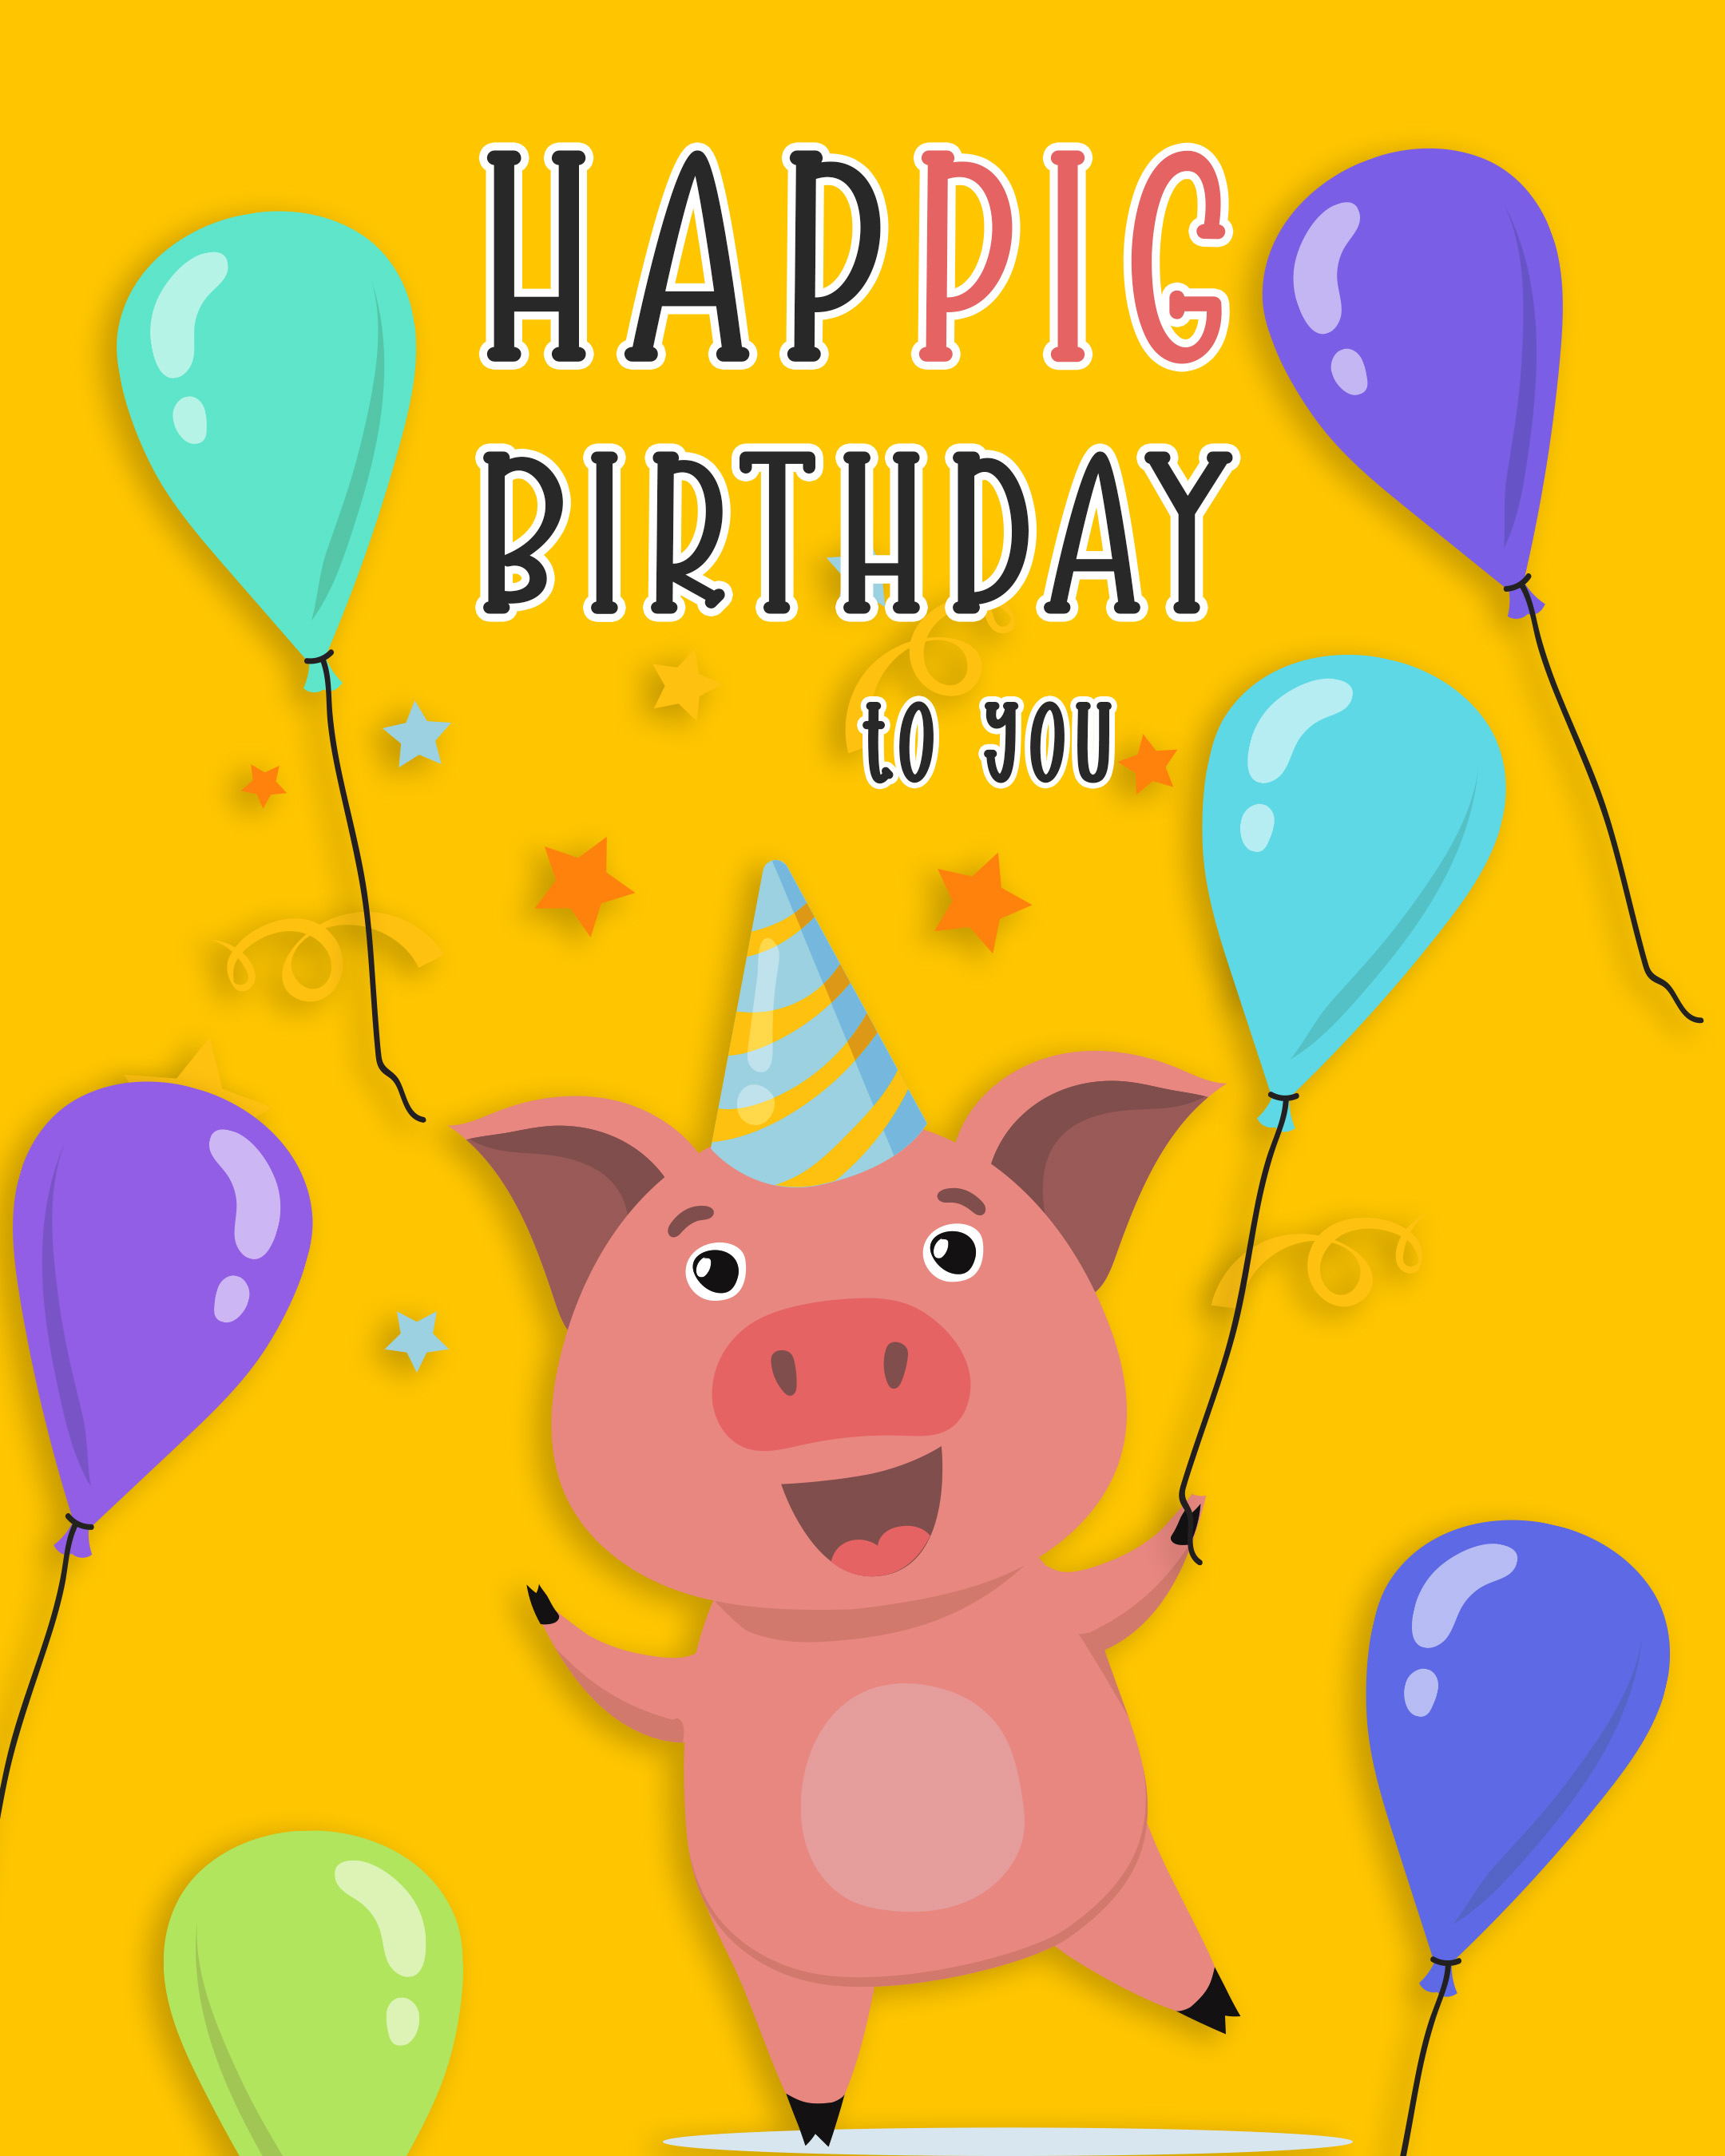 Free Funny Happy Birthday Image With Balloons And Pig - birthdayimg.com